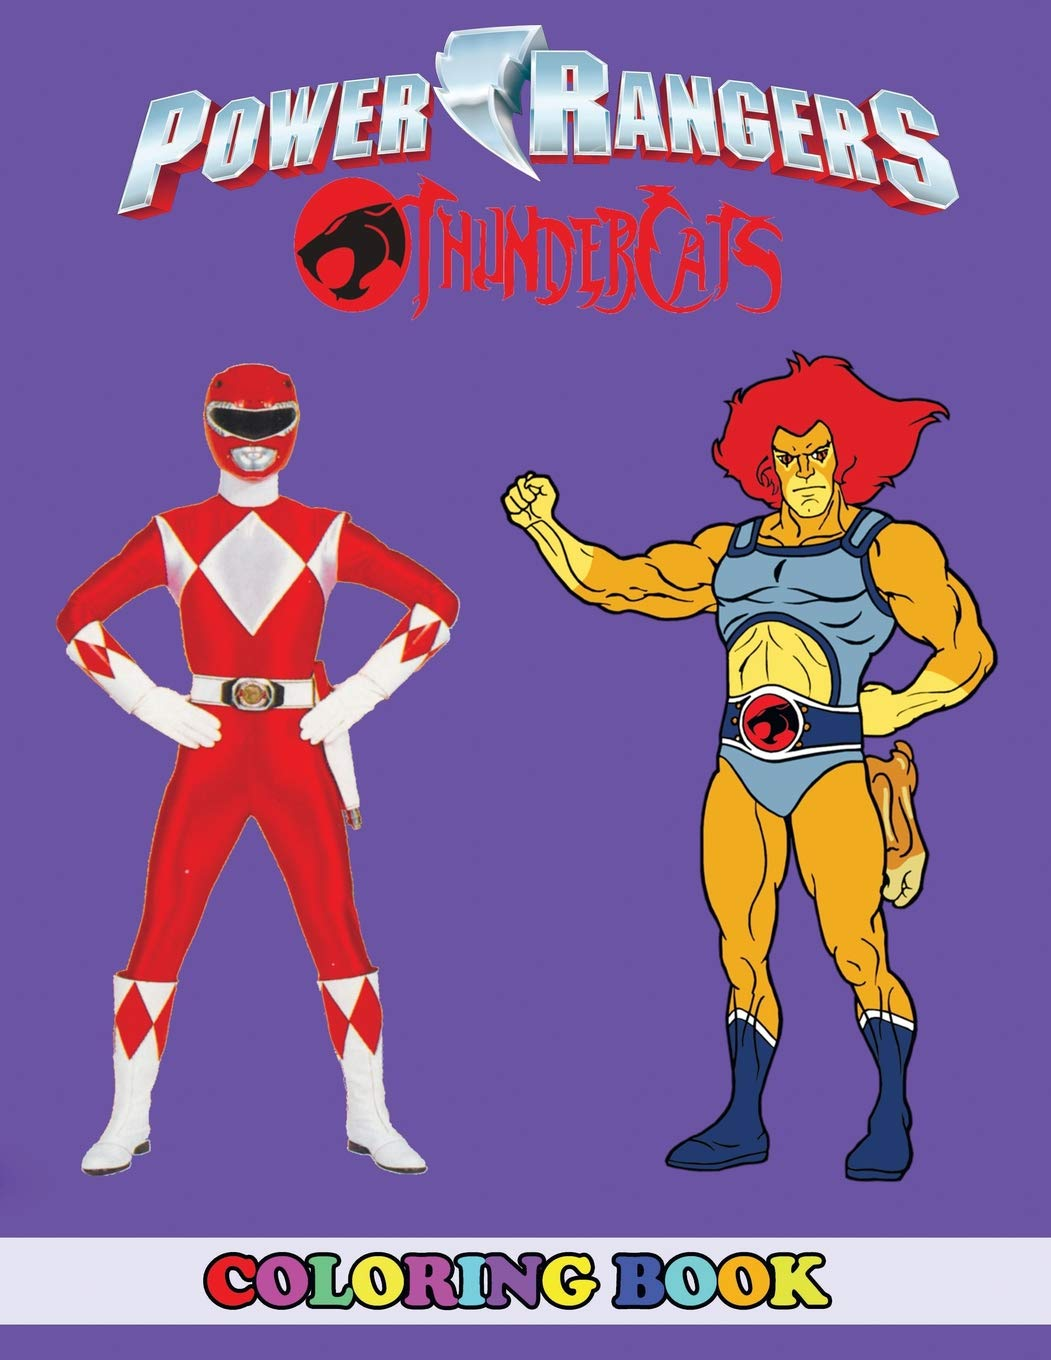 Amazon.com: Power Rangers and Thunder Cats Coloring Book: 2 in 1 ...